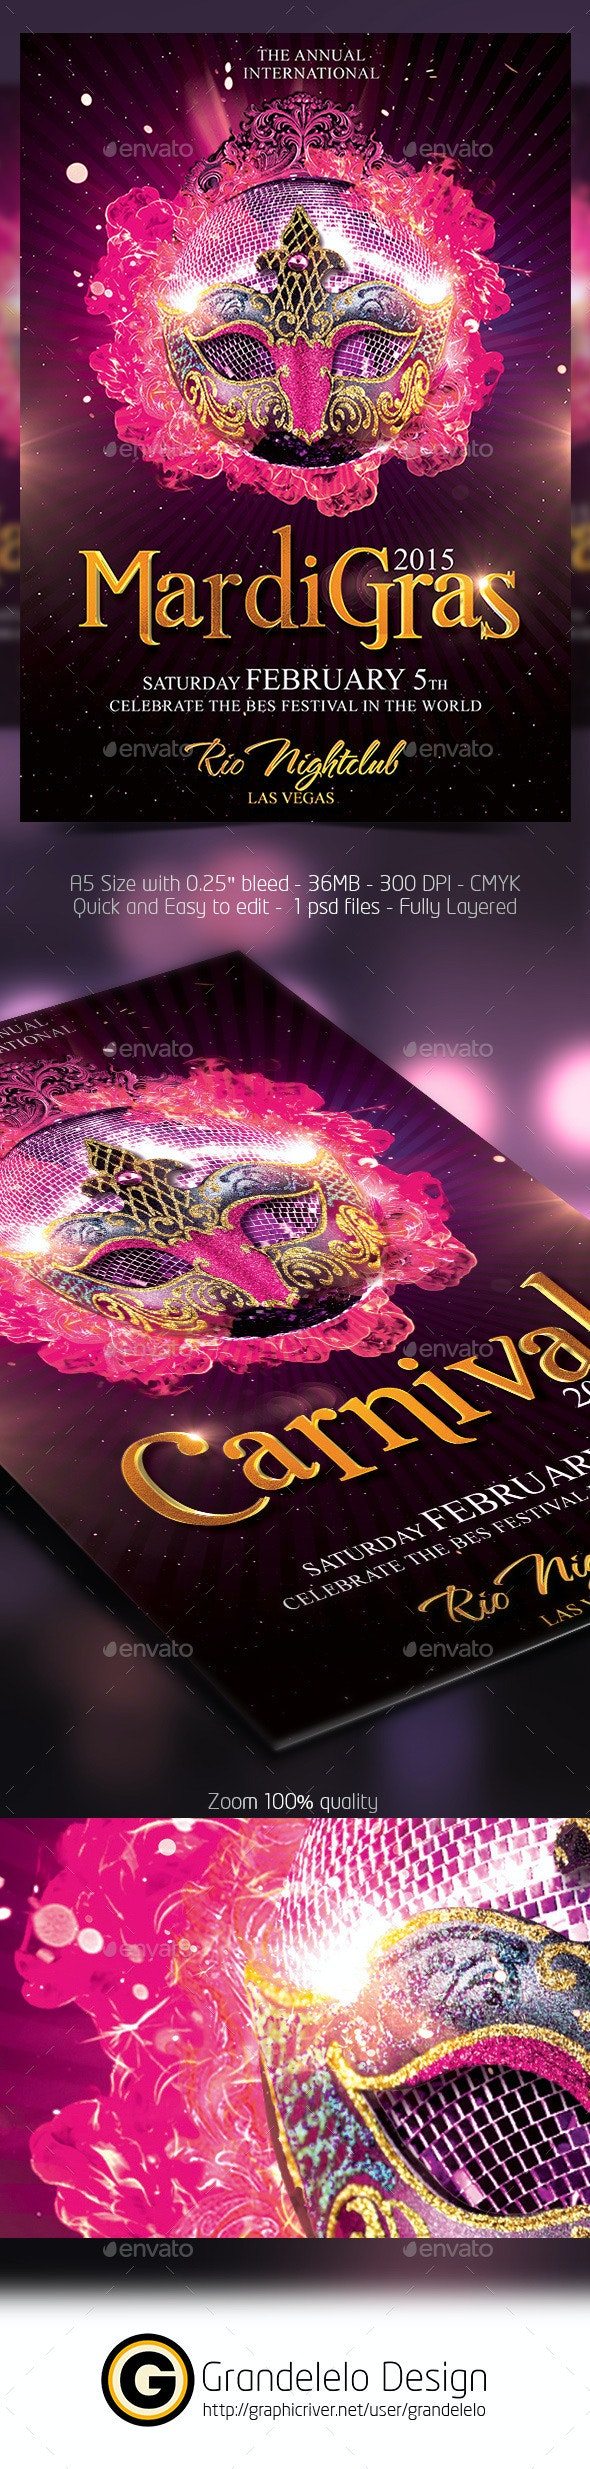 The Carnival 2015 Flyer Template - Clubs & Parties Events